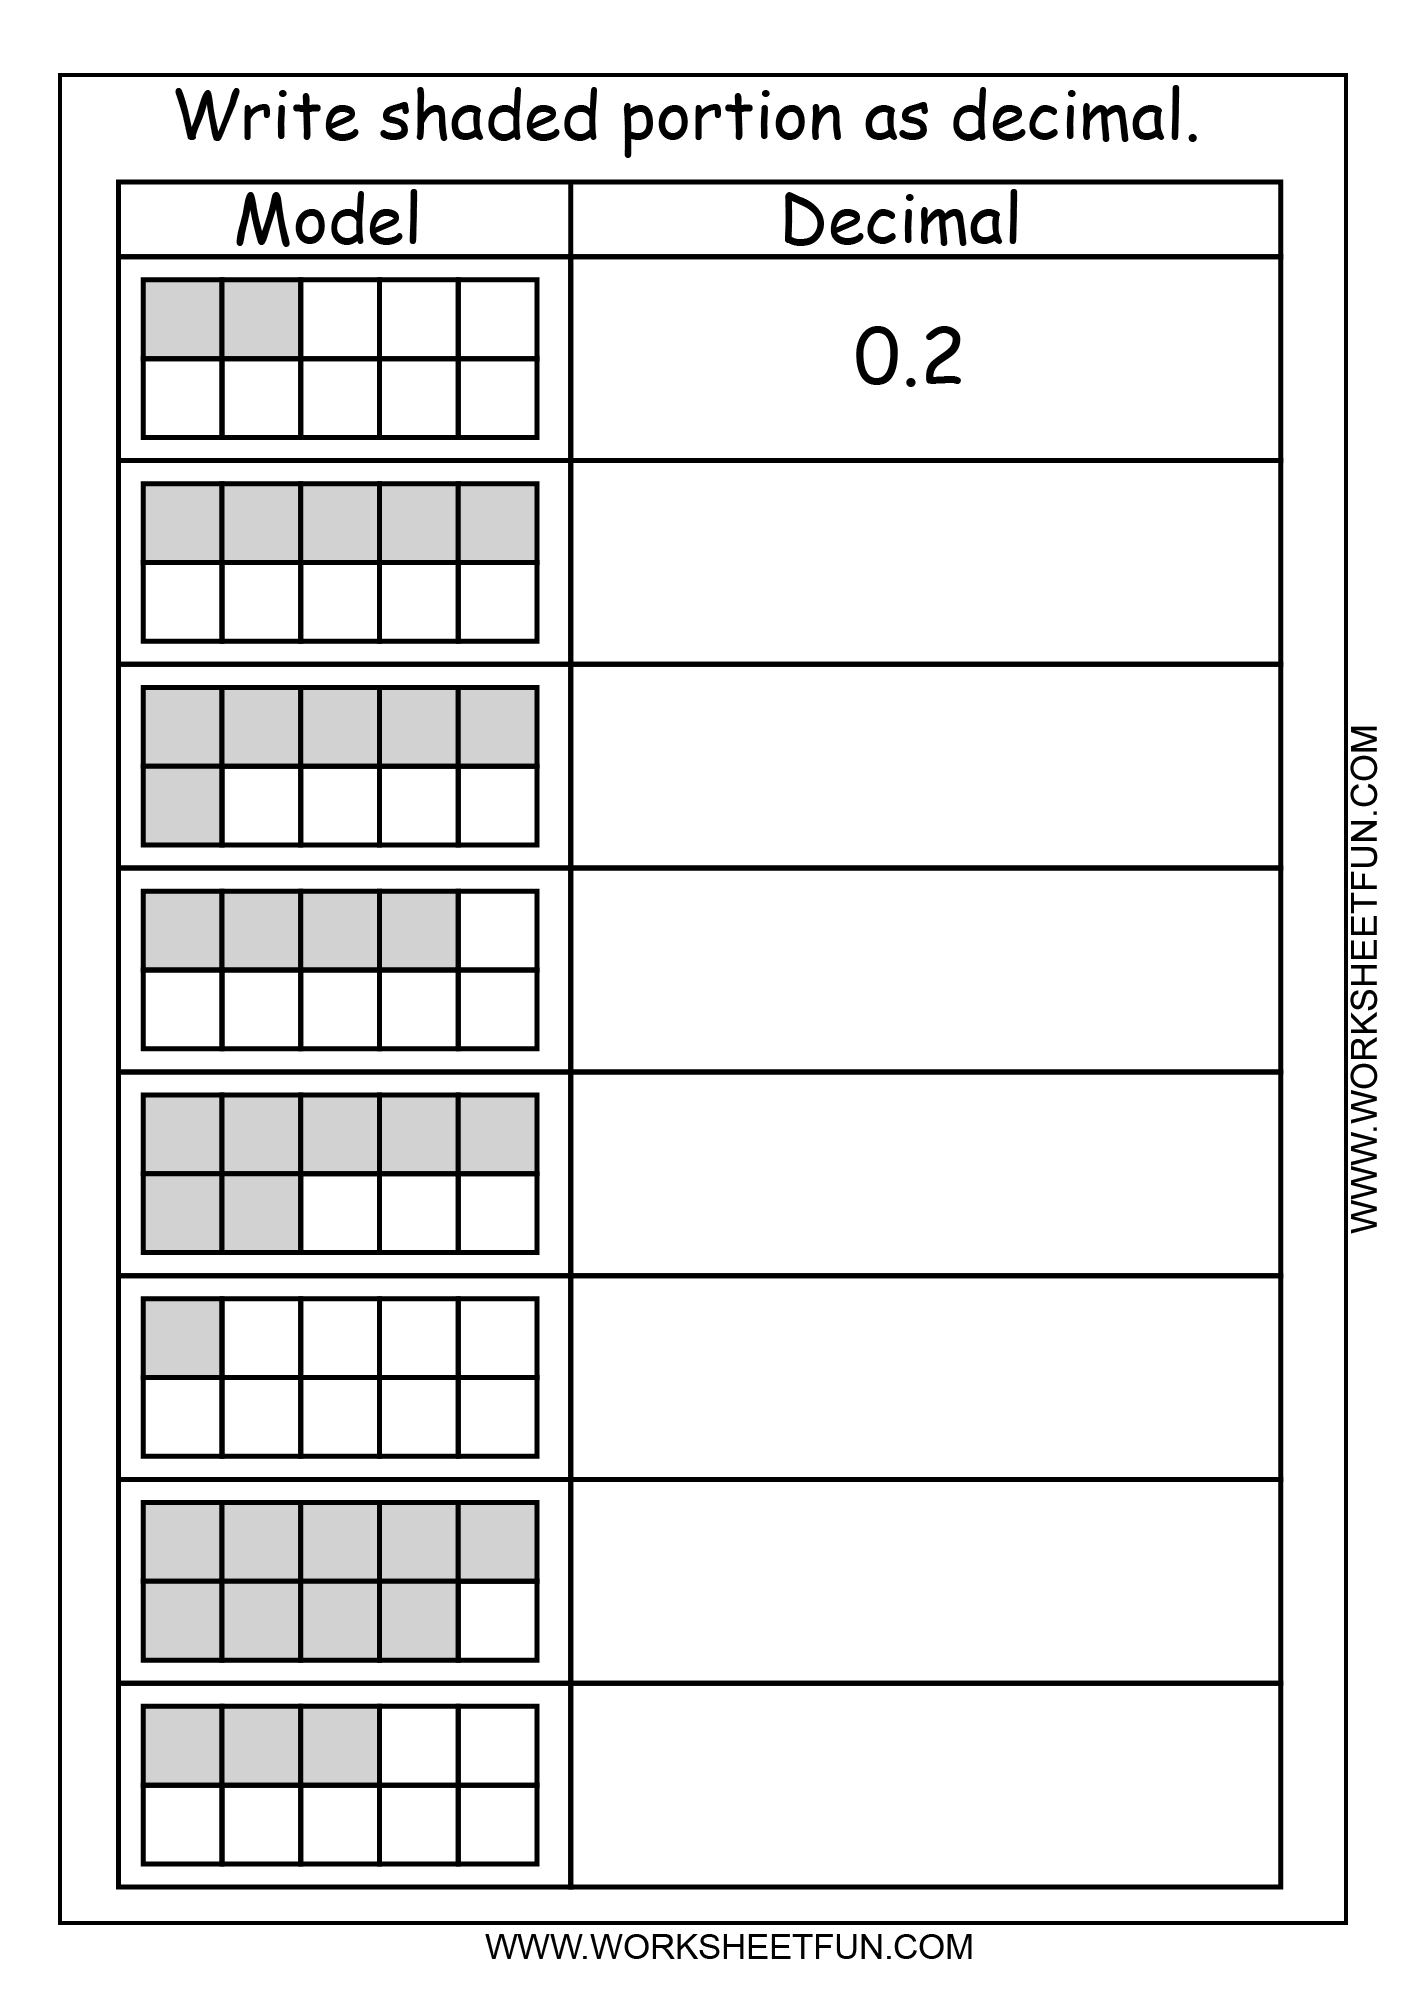 Decimal Model Tenths 2 Worksheets